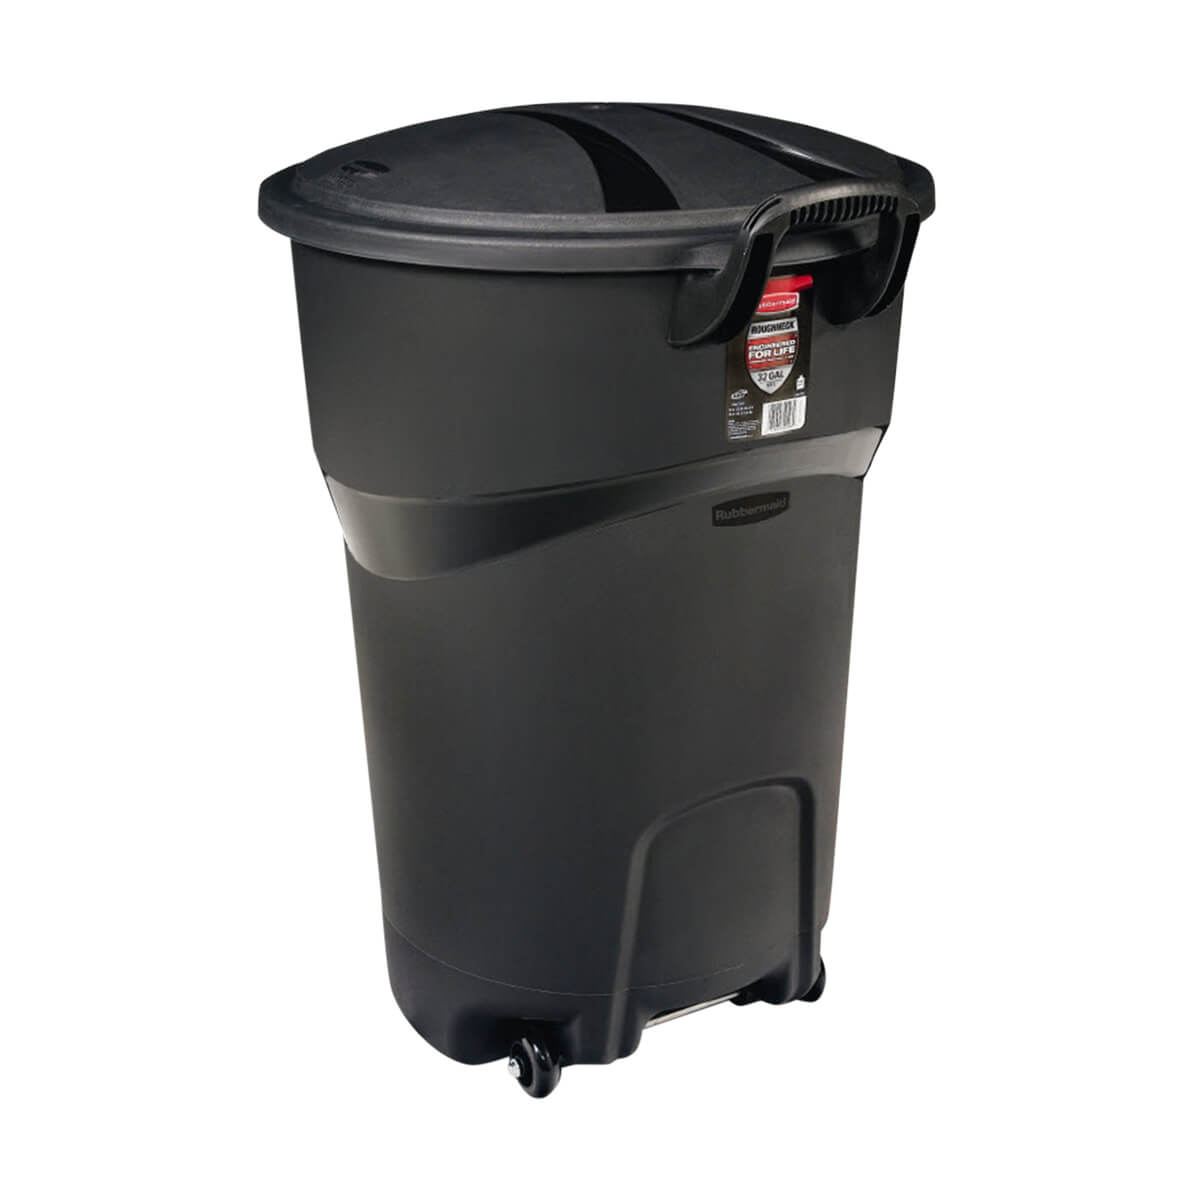 Rubbermaid Black Wheeled Garbage Can  - 121 L